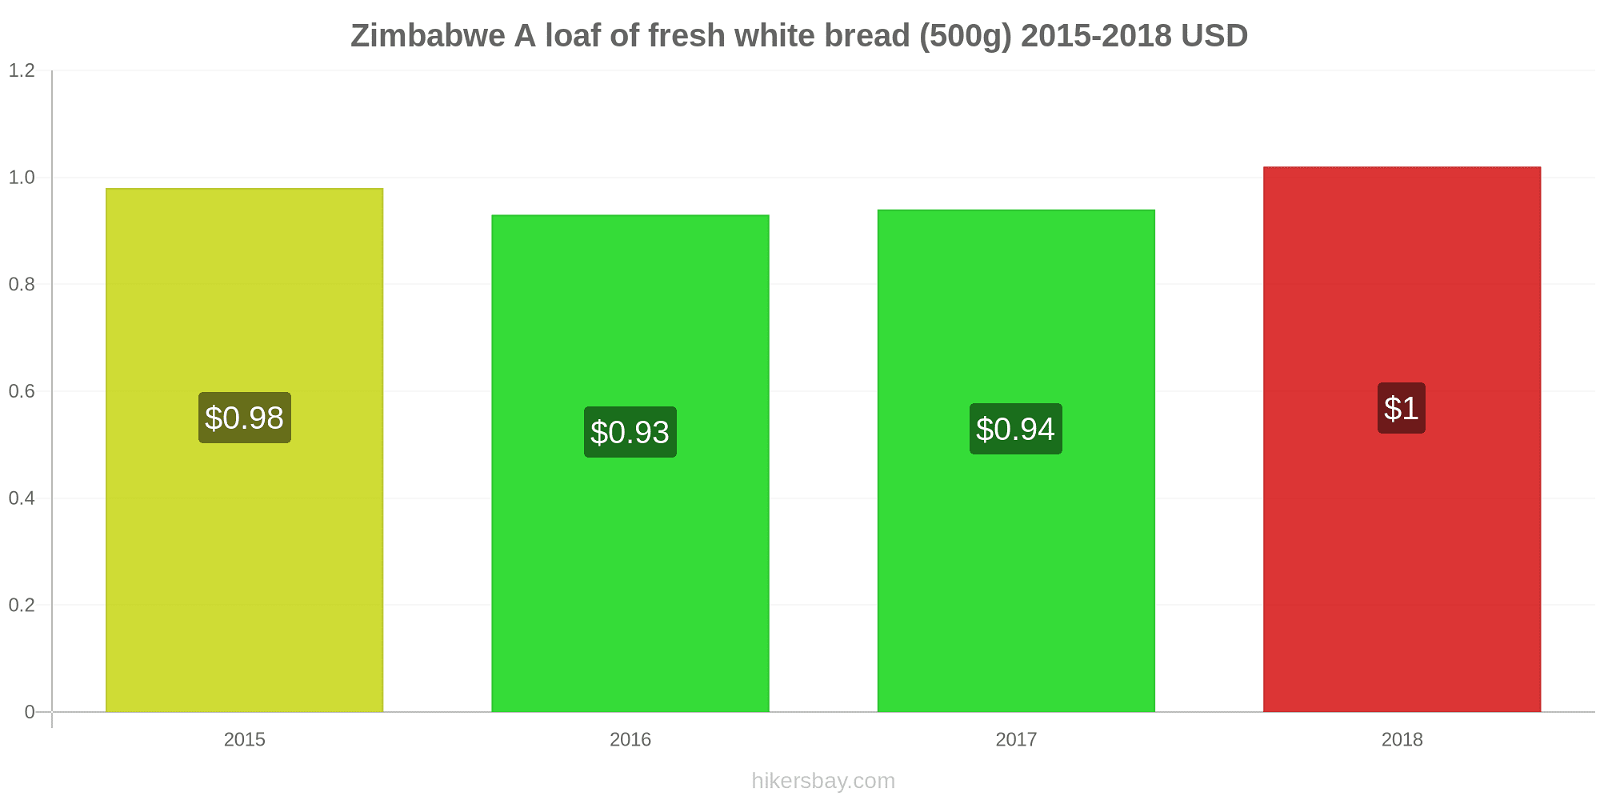 Zimbabwe price changes A loaf of fresh white bread (500g) hikersbay.com